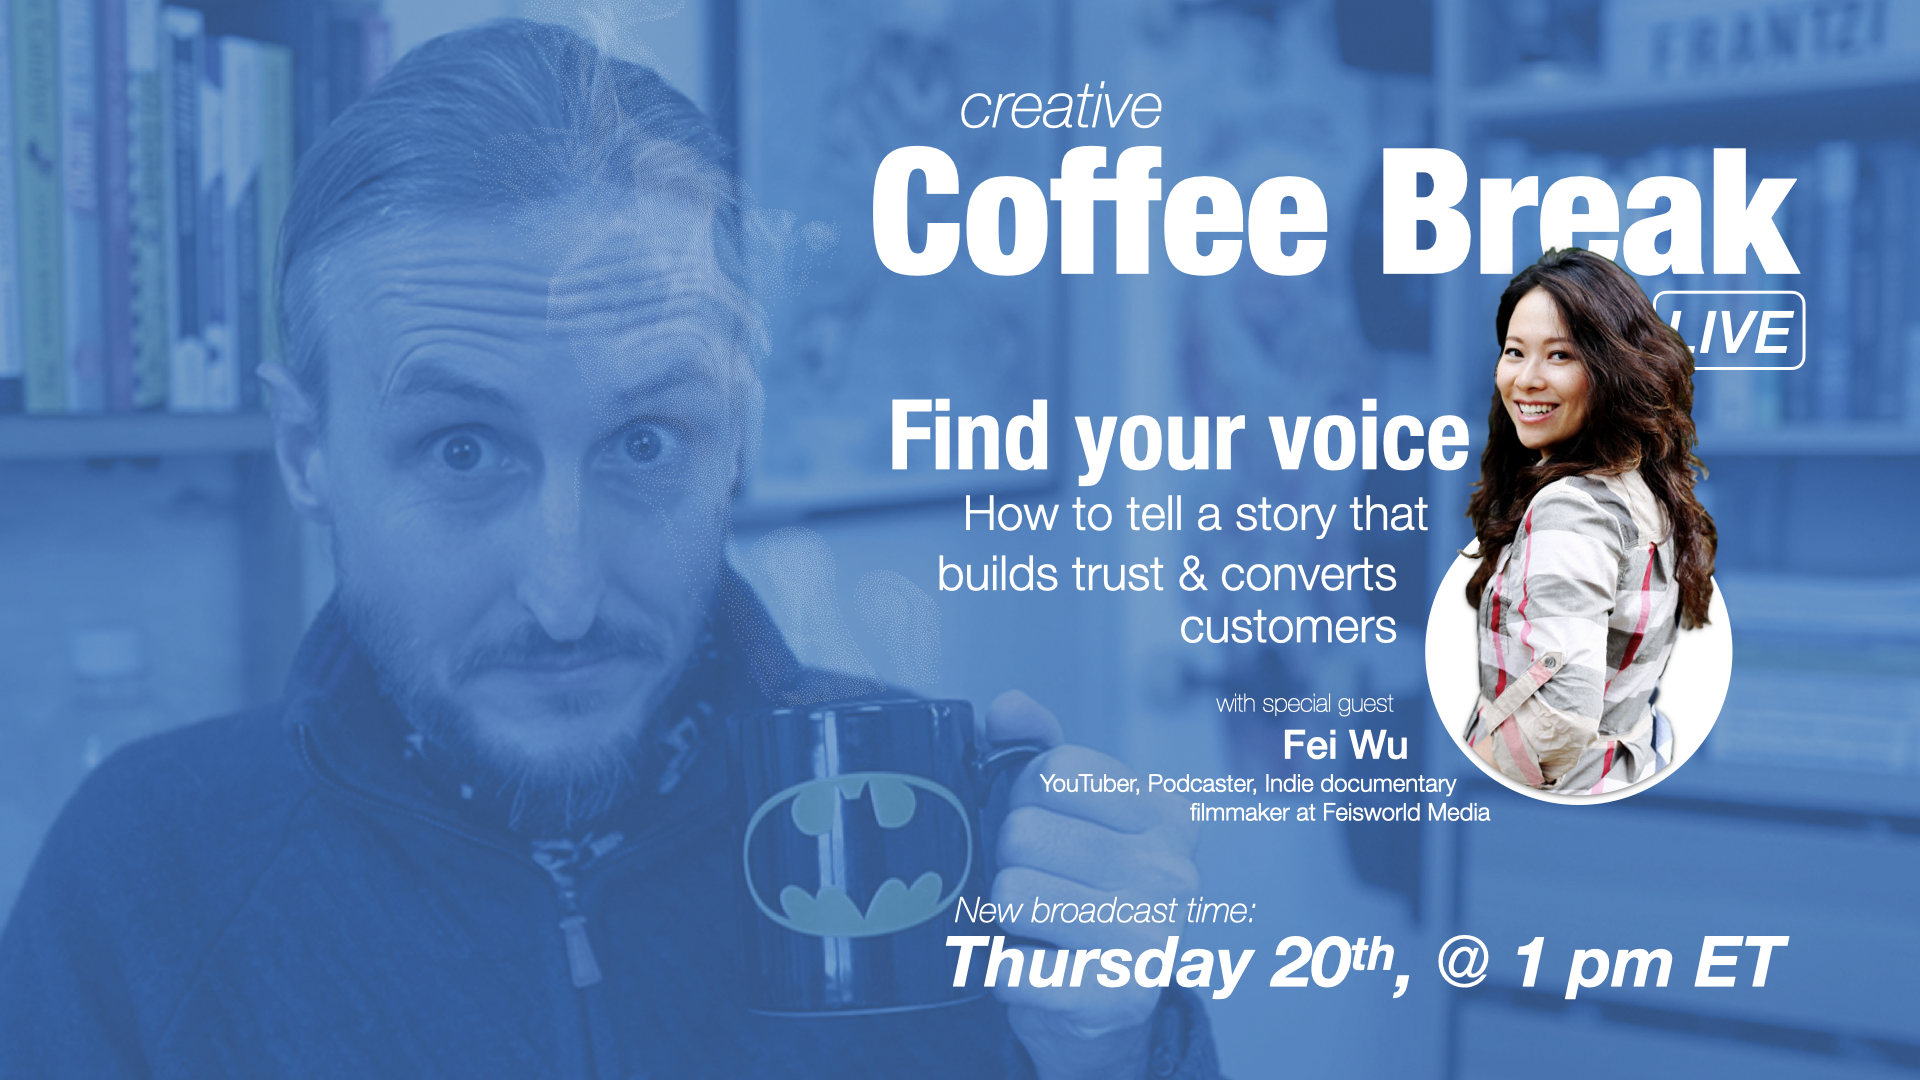 Find your voice: How to Tell a Story that Builds Trust and Converts Customers